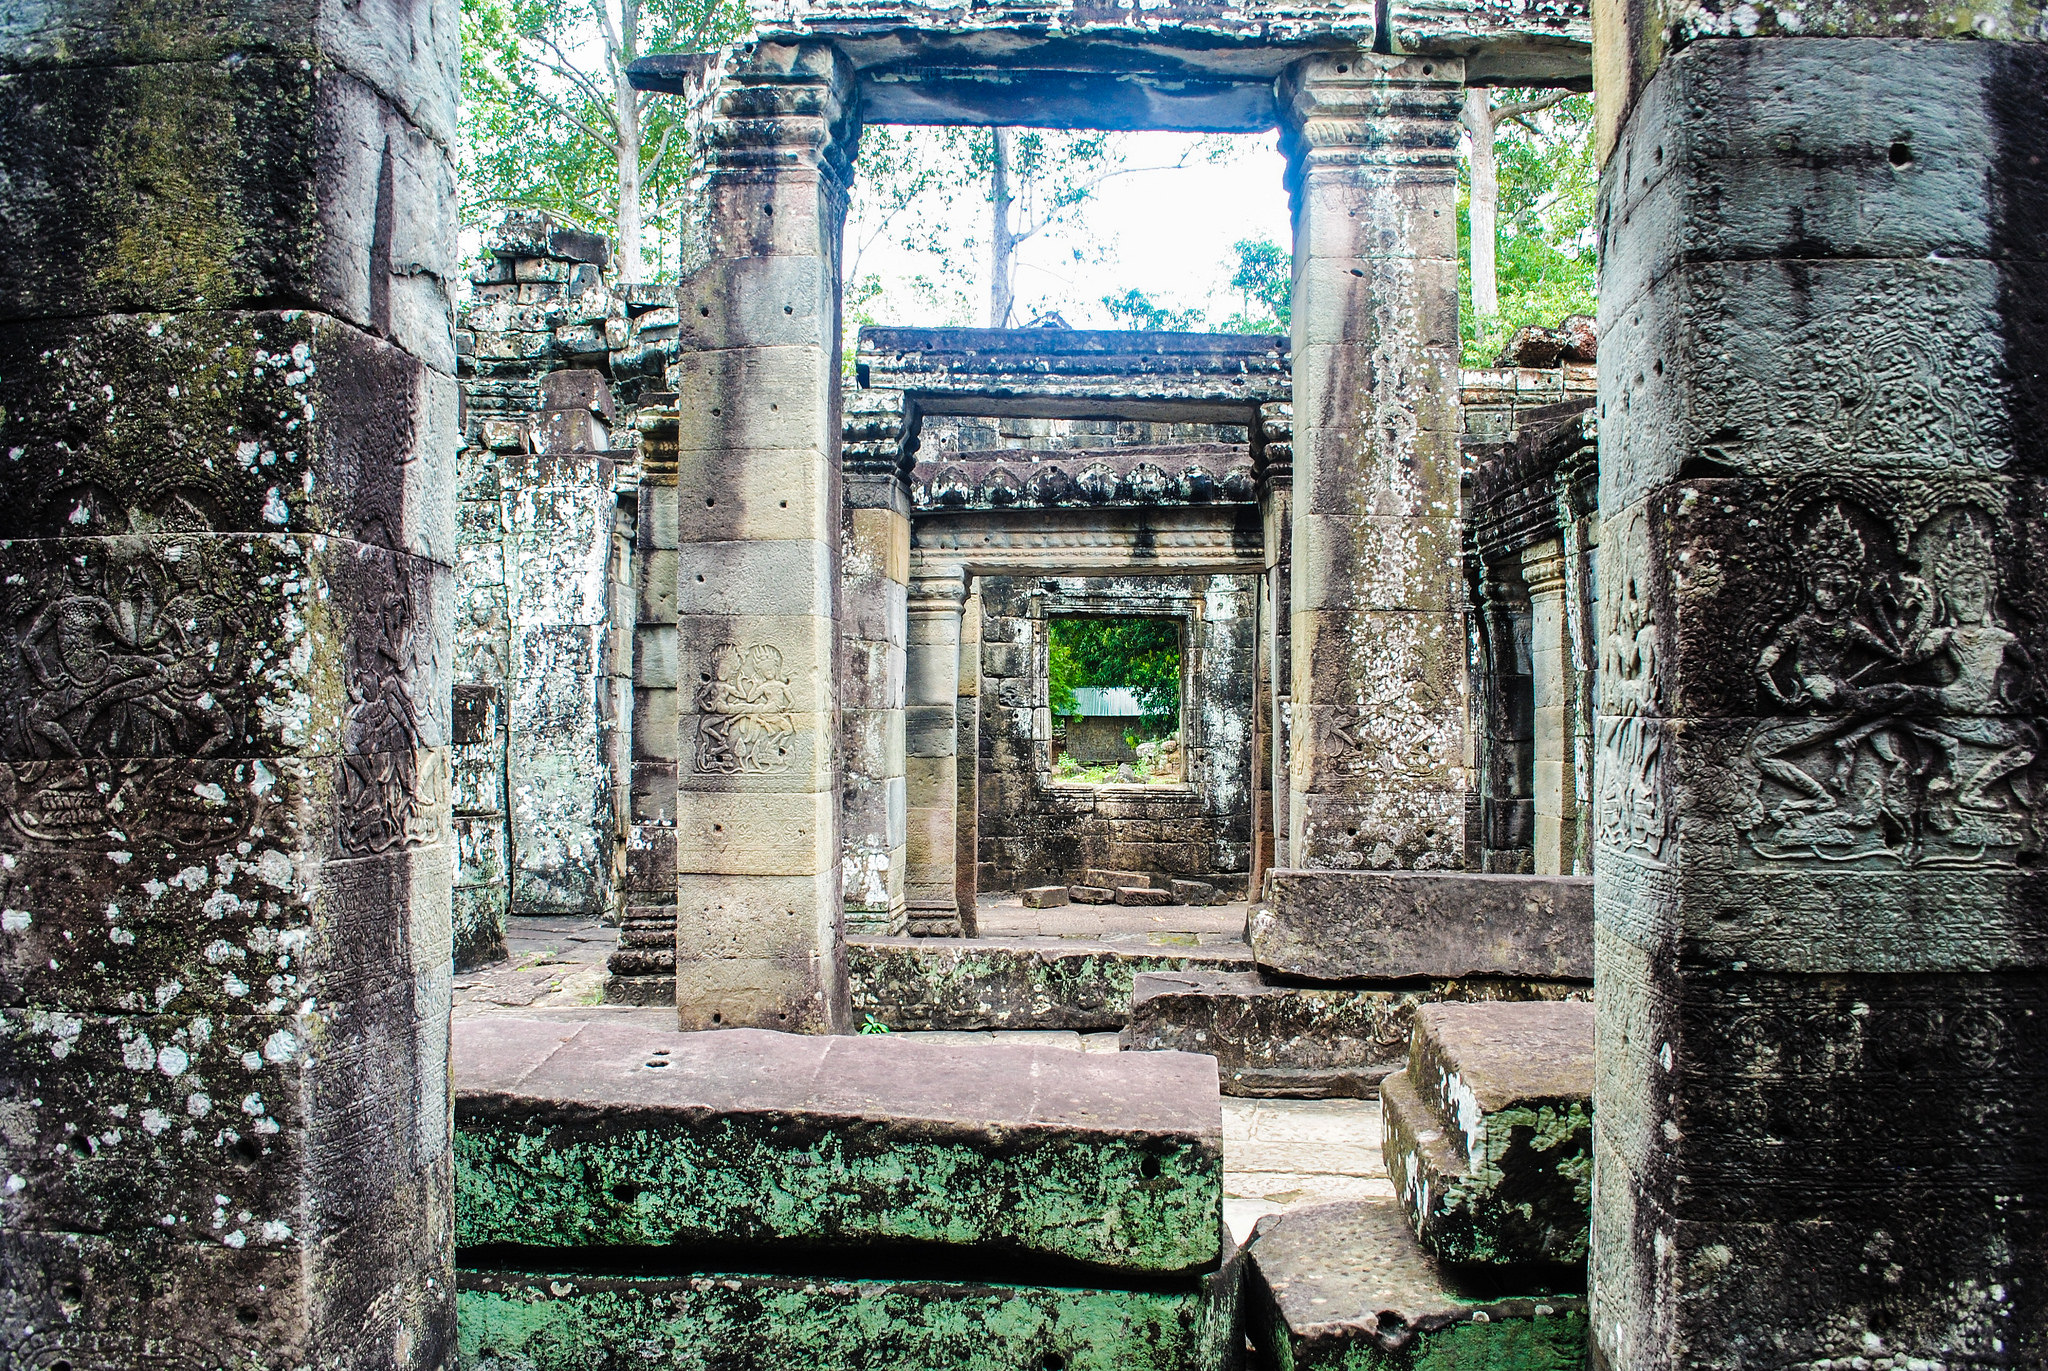 The fall of the Angkor was gradual, not dramatic, researchers find